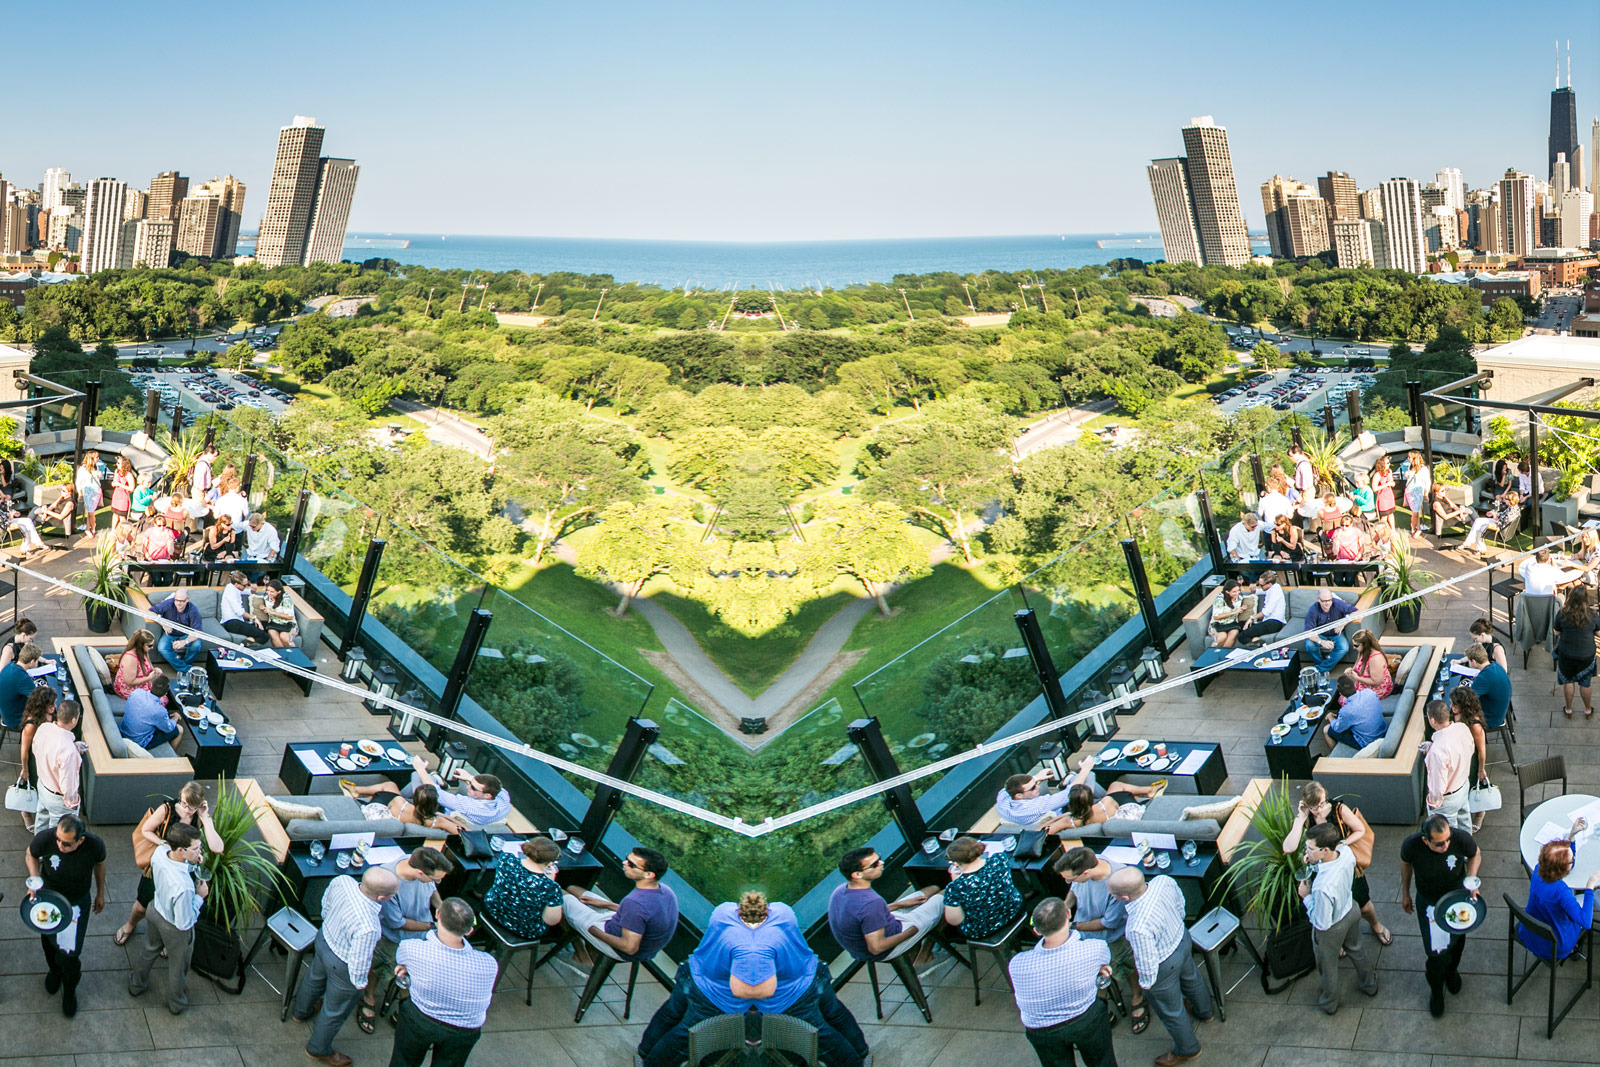 Looking for restaurants with outdoor seating near Lincoln Park open now?